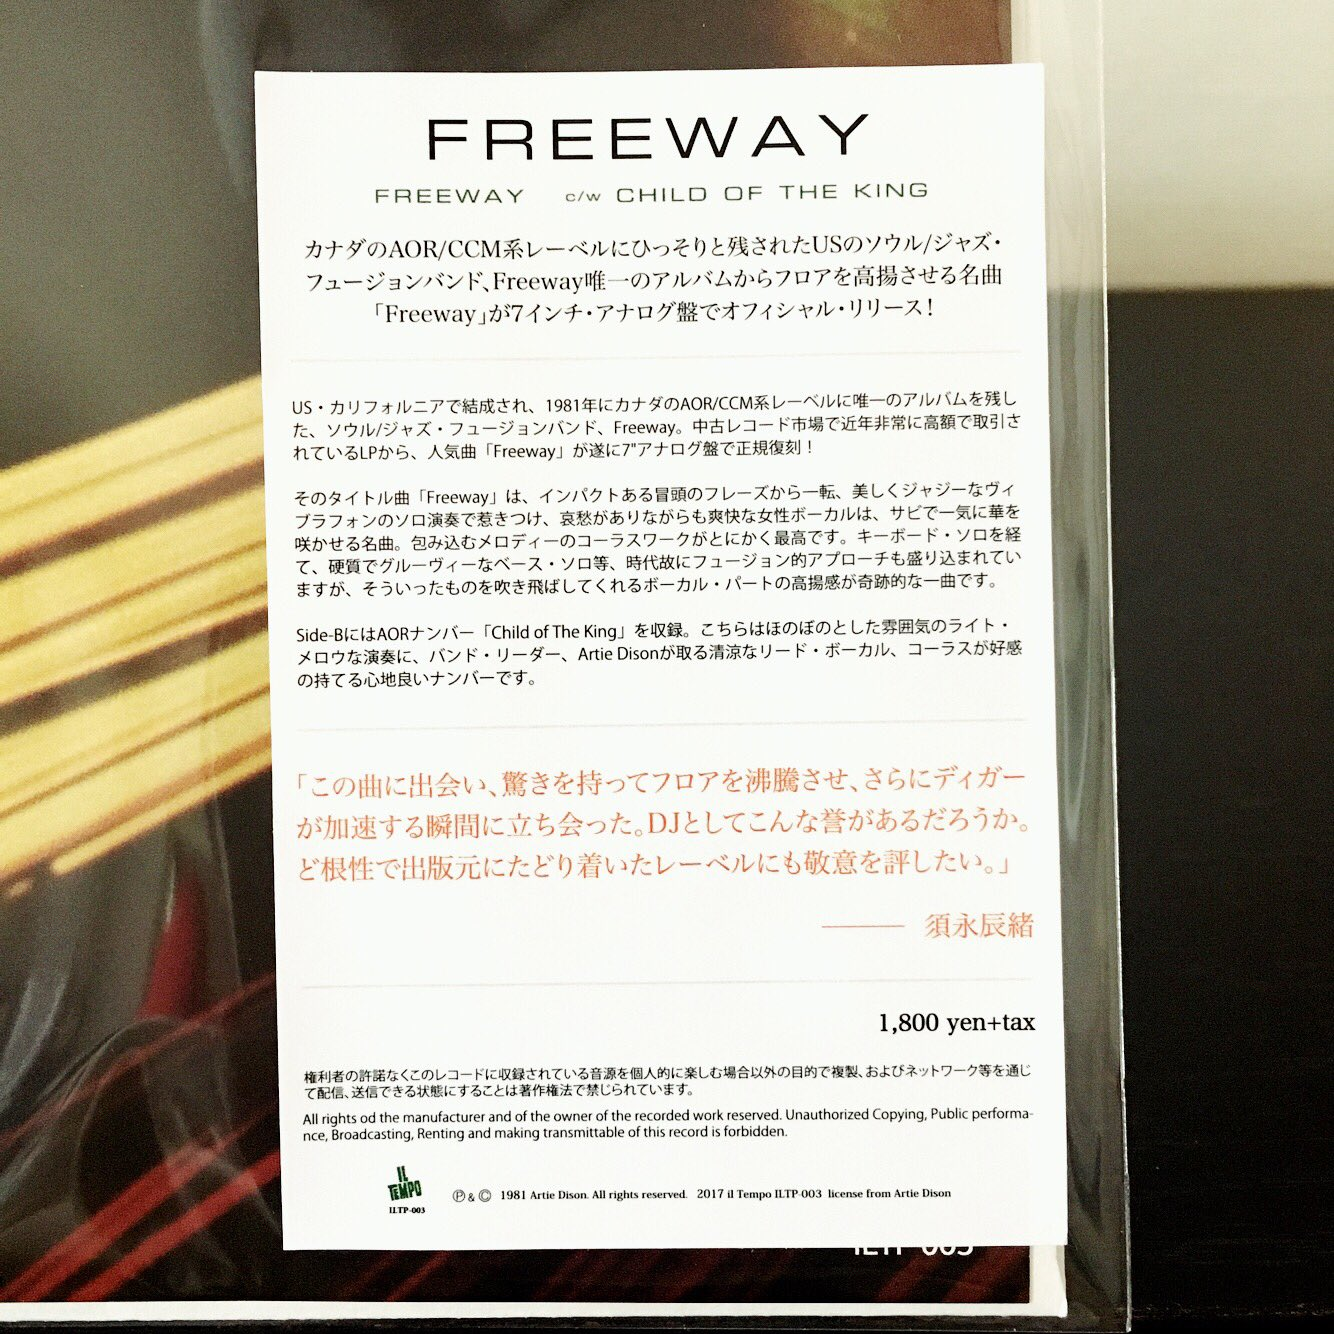 Freeway_sunaga_t